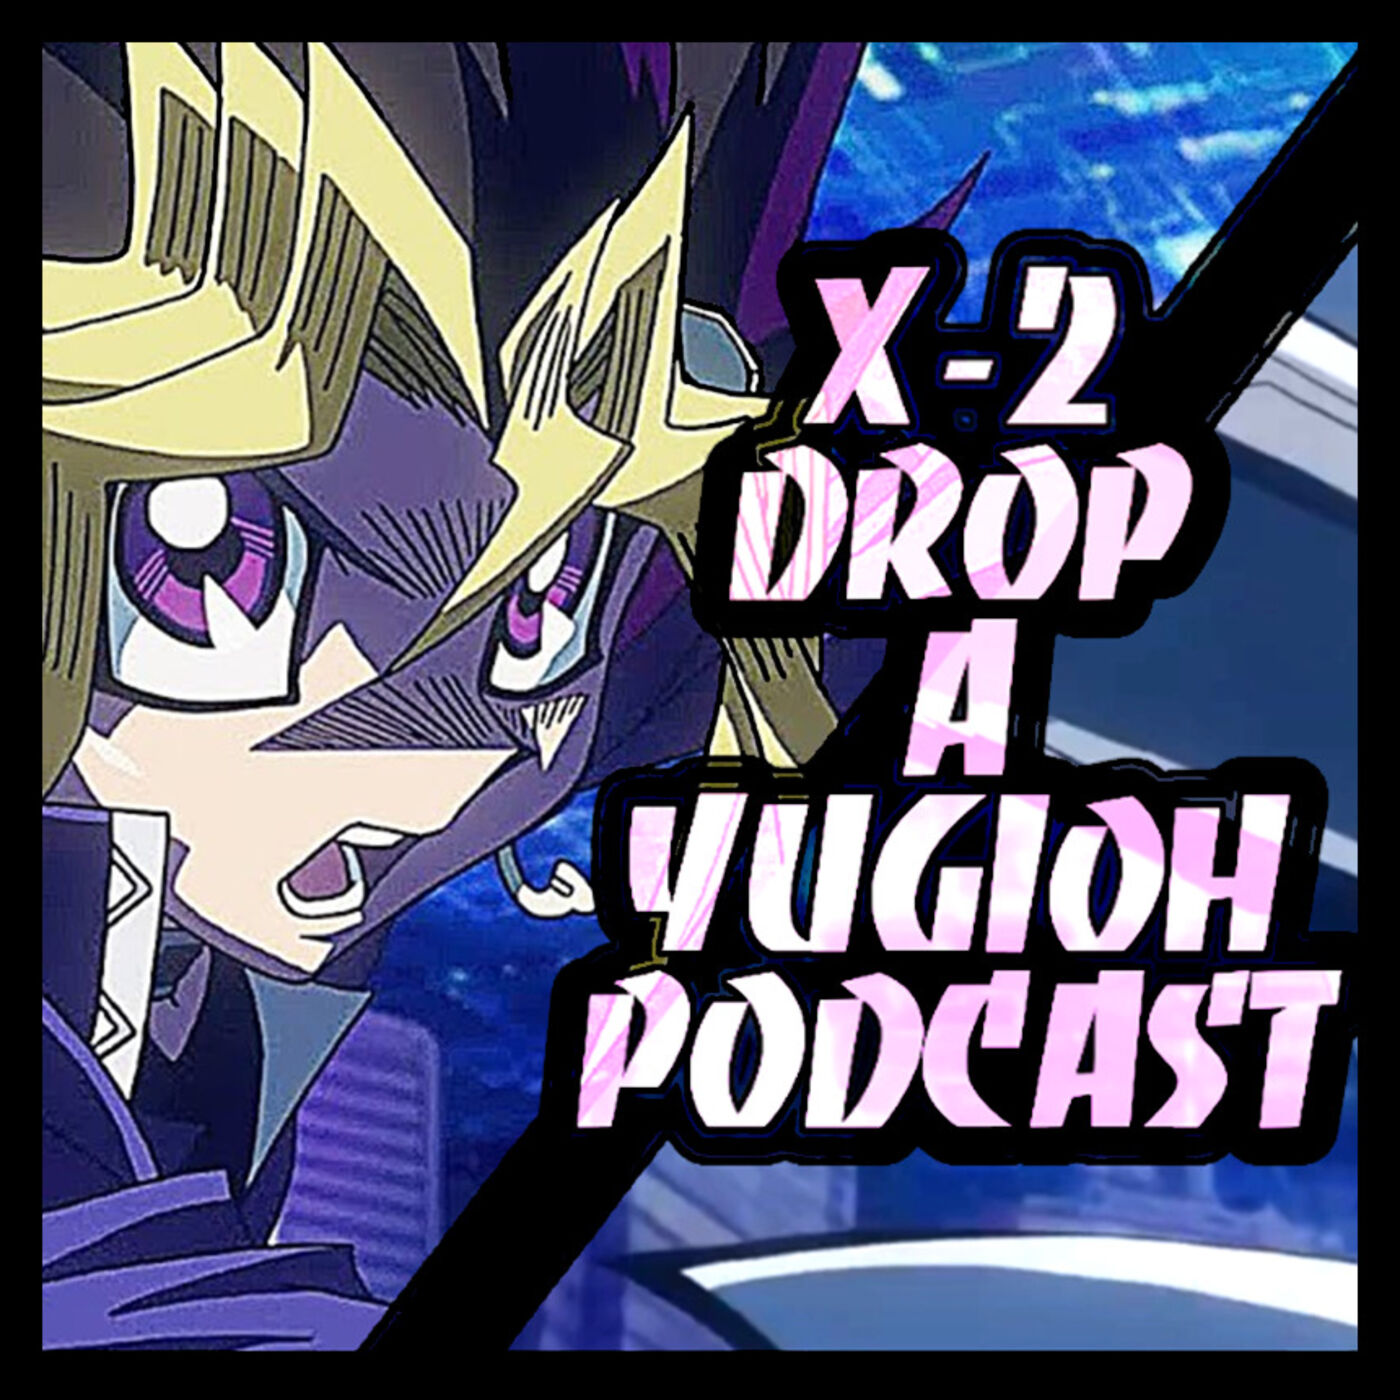 Yugioh Ban List April 2020.X 2 Drop A Yu Gi Oh Discussion Podcast Podbay